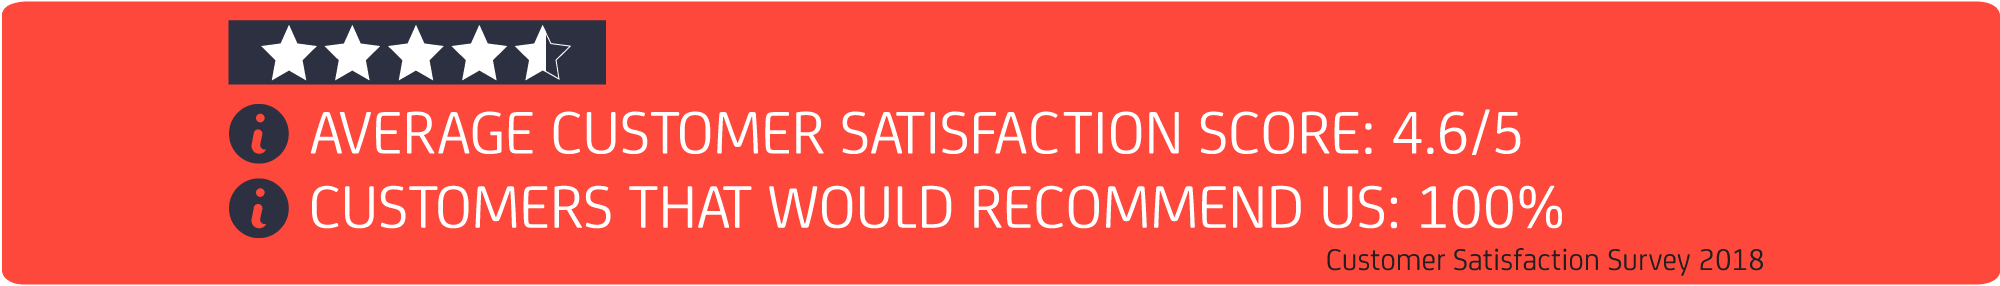 Customer-satisfaction-score-2018-banner